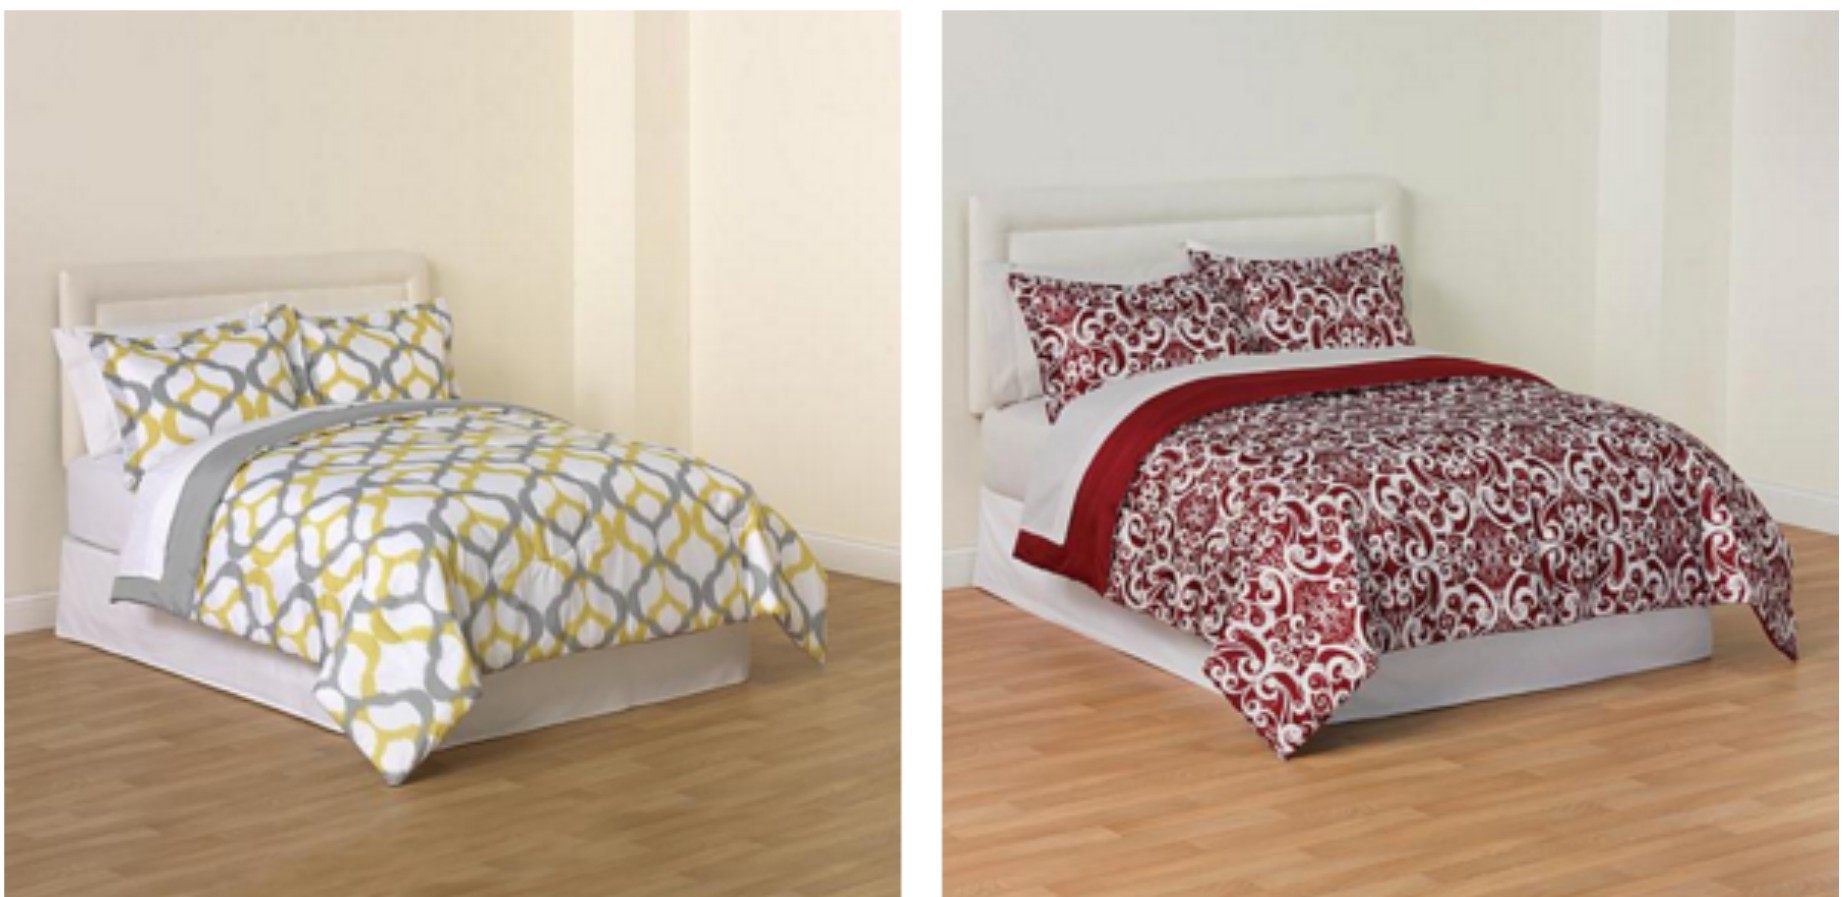 Kmart Printable Coupons | Kmart Bed Sets | Kmart Bedroom Dressers